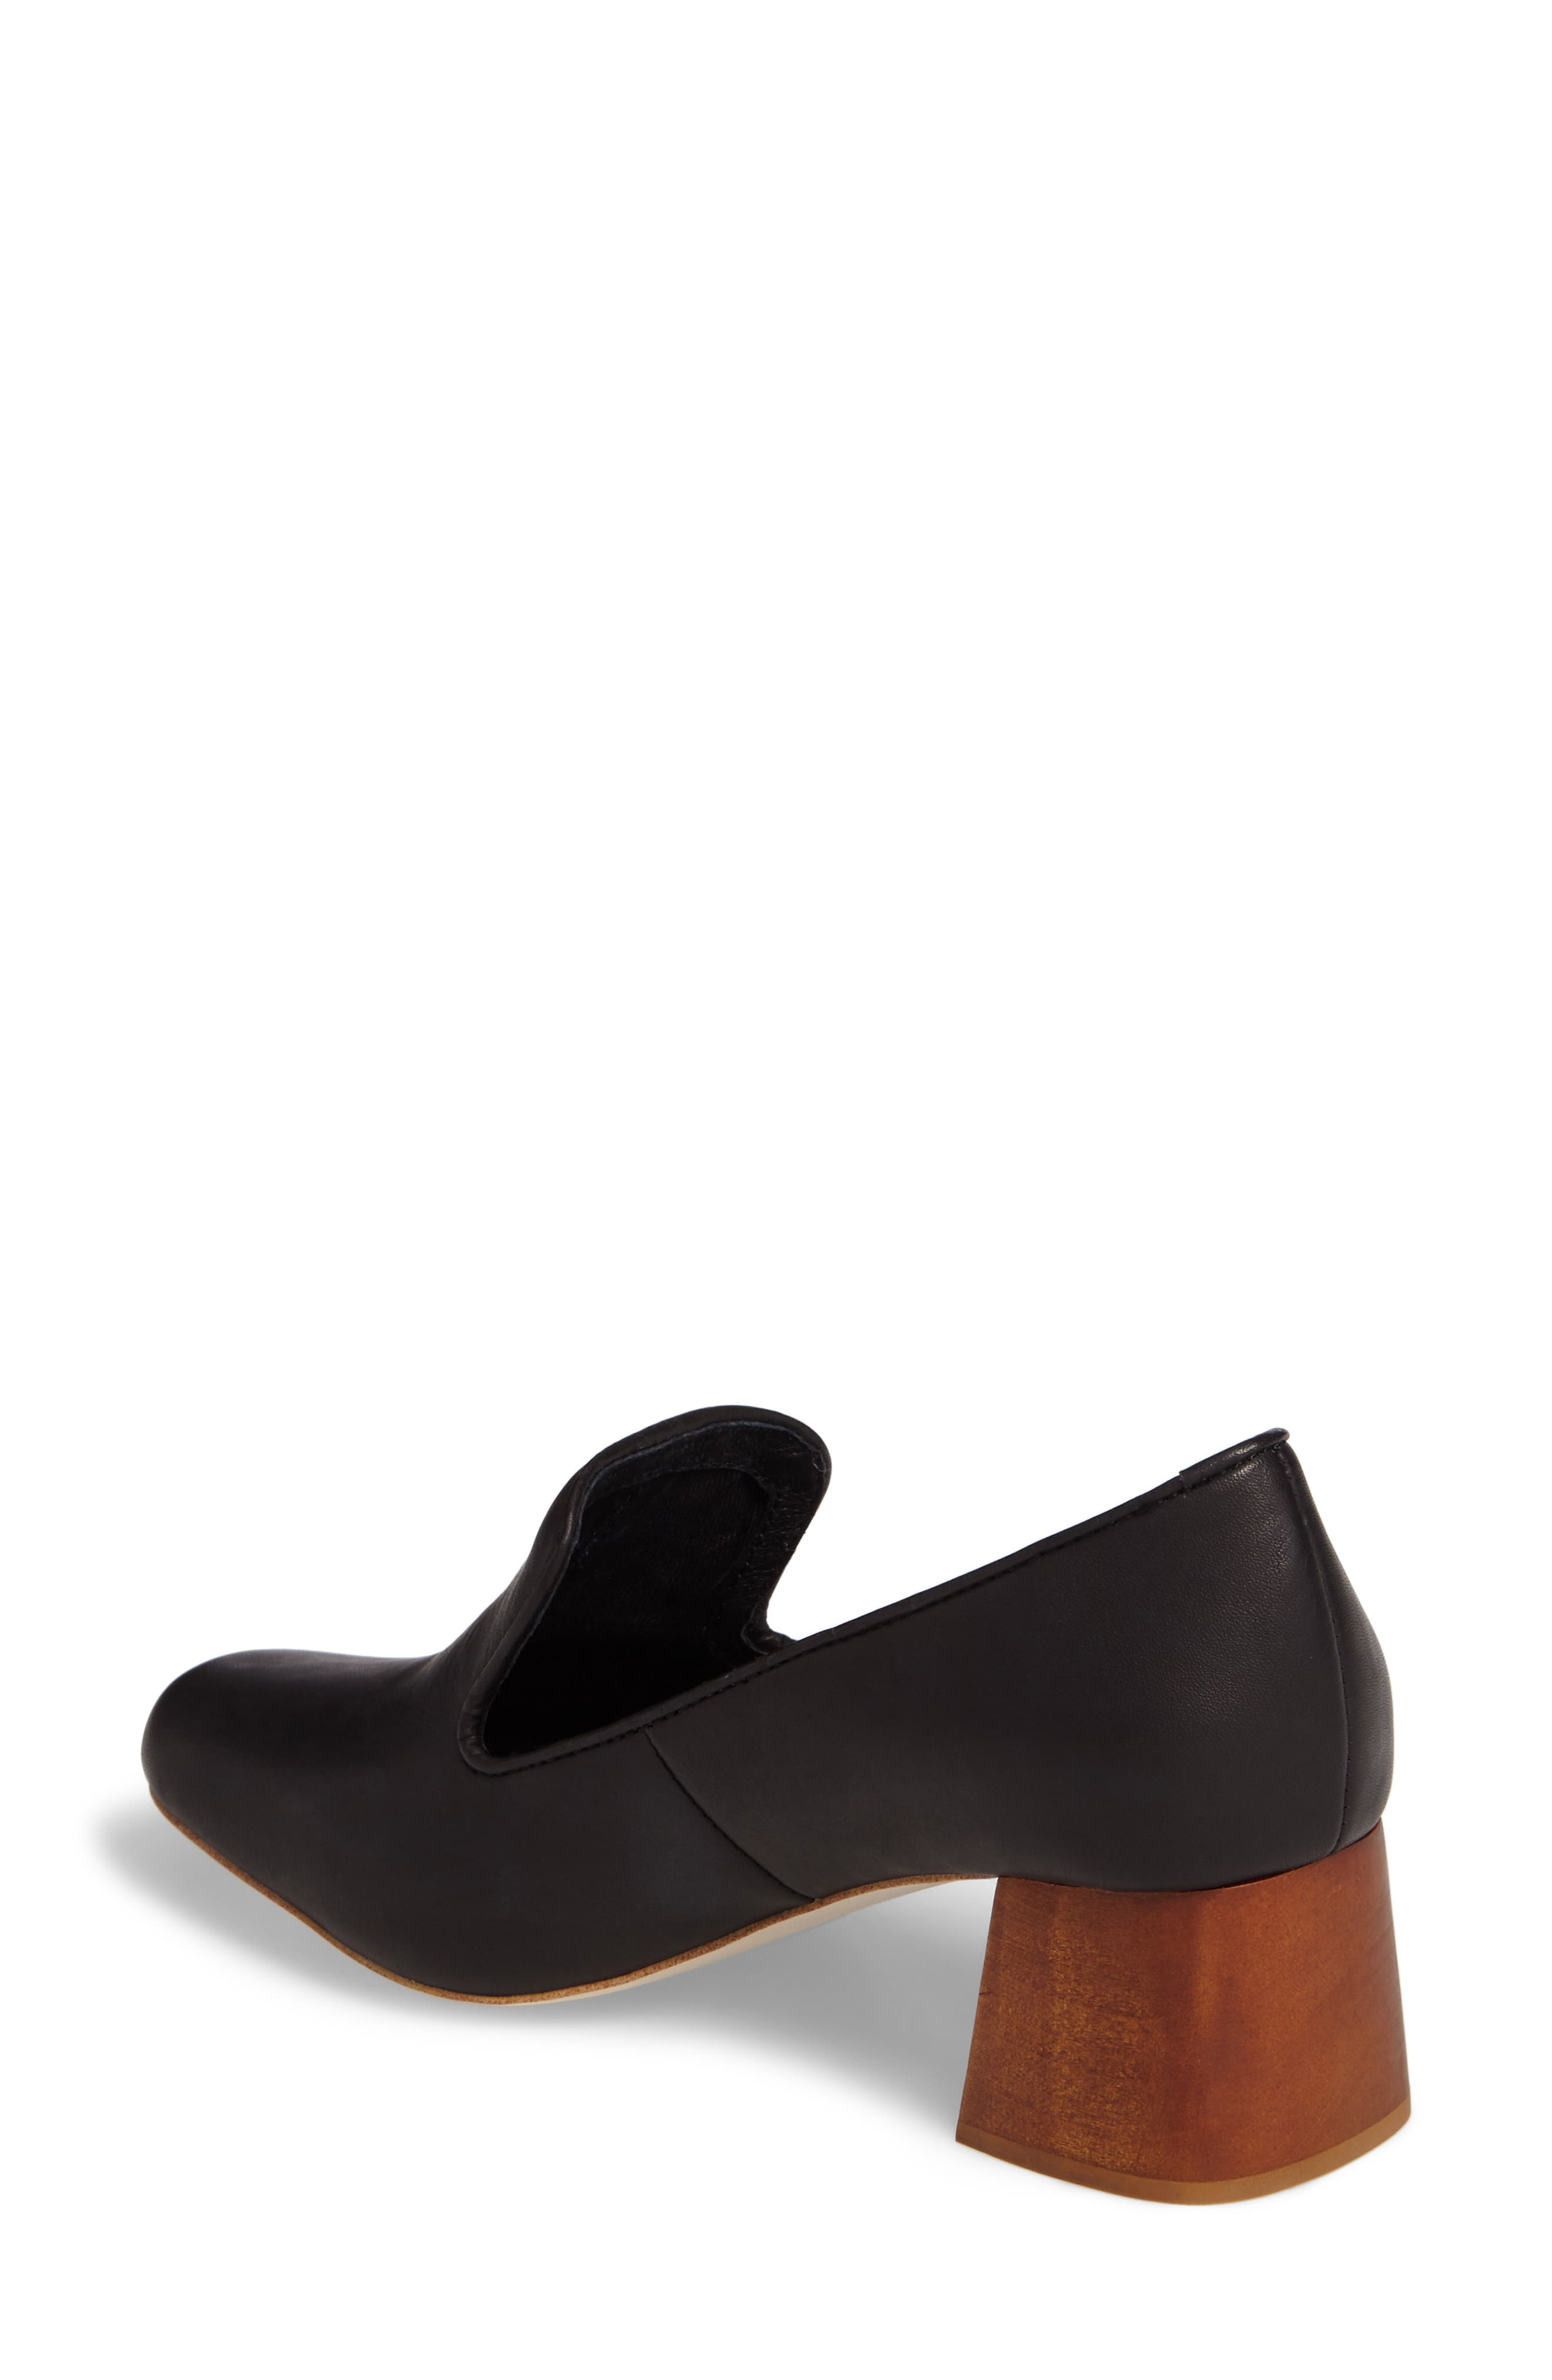 Alternate Image 2  - Jeffrey Campbell Lister Flared Heel Loafer Pump (Women)